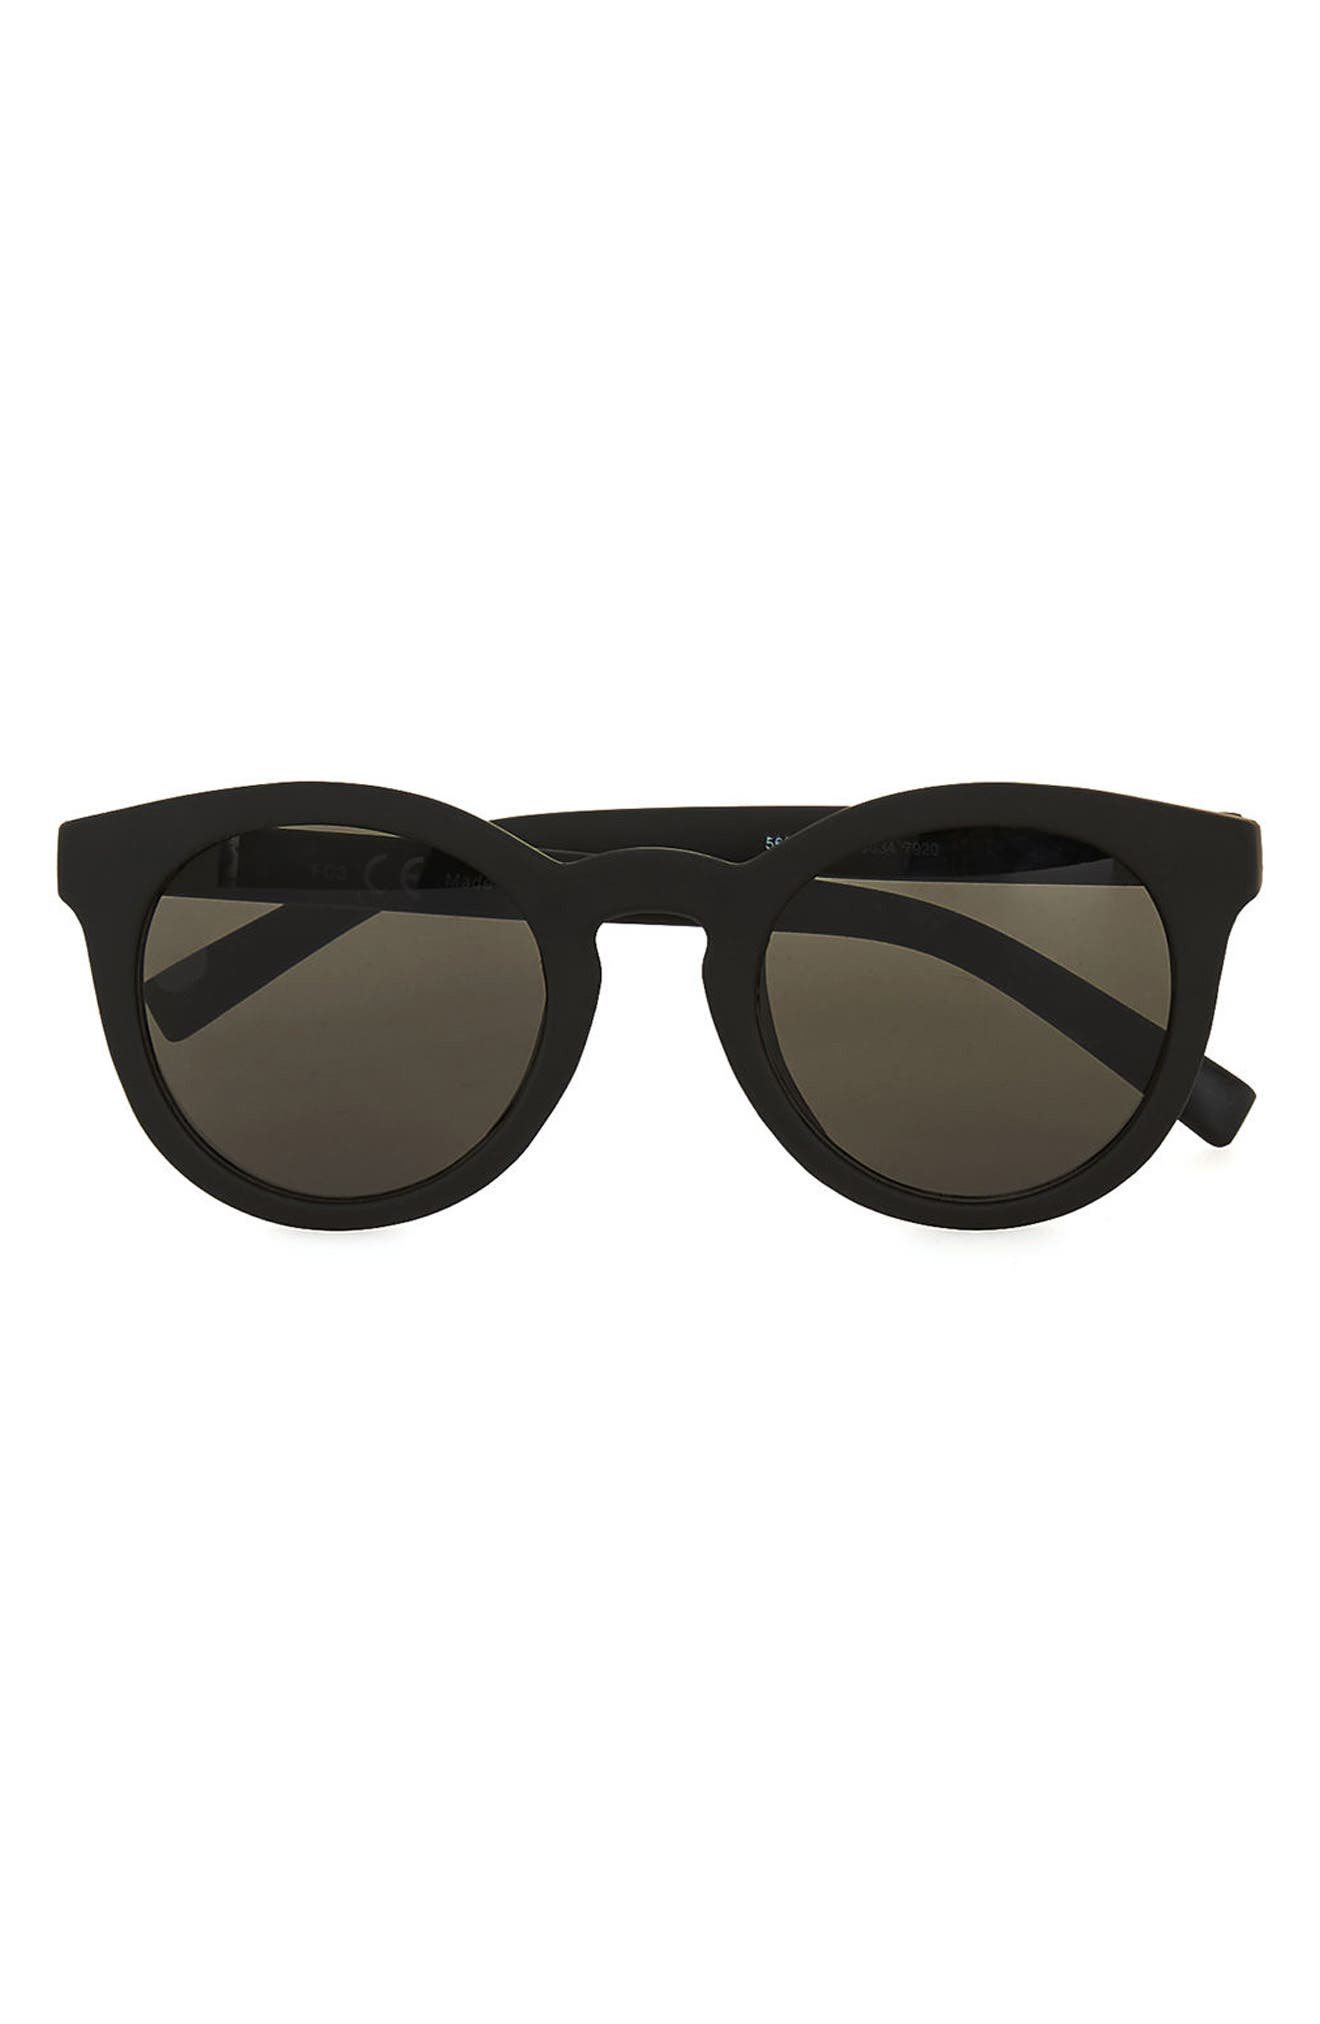 46mm Rubberized Round Sunglasses,                             Main thumbnail 1, color,